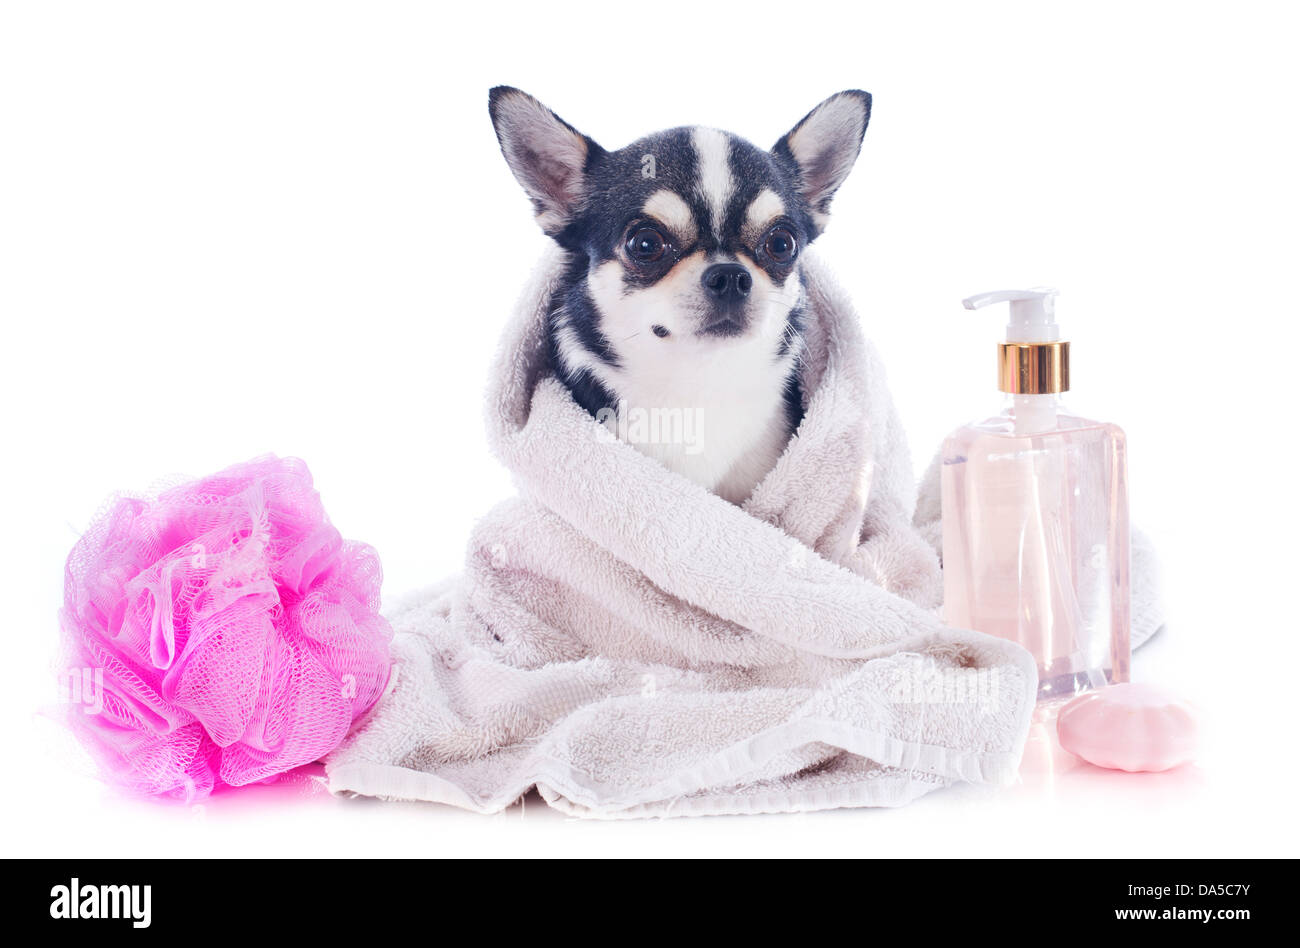 purebred chihuahua after the bath in front of white background - Stock Image